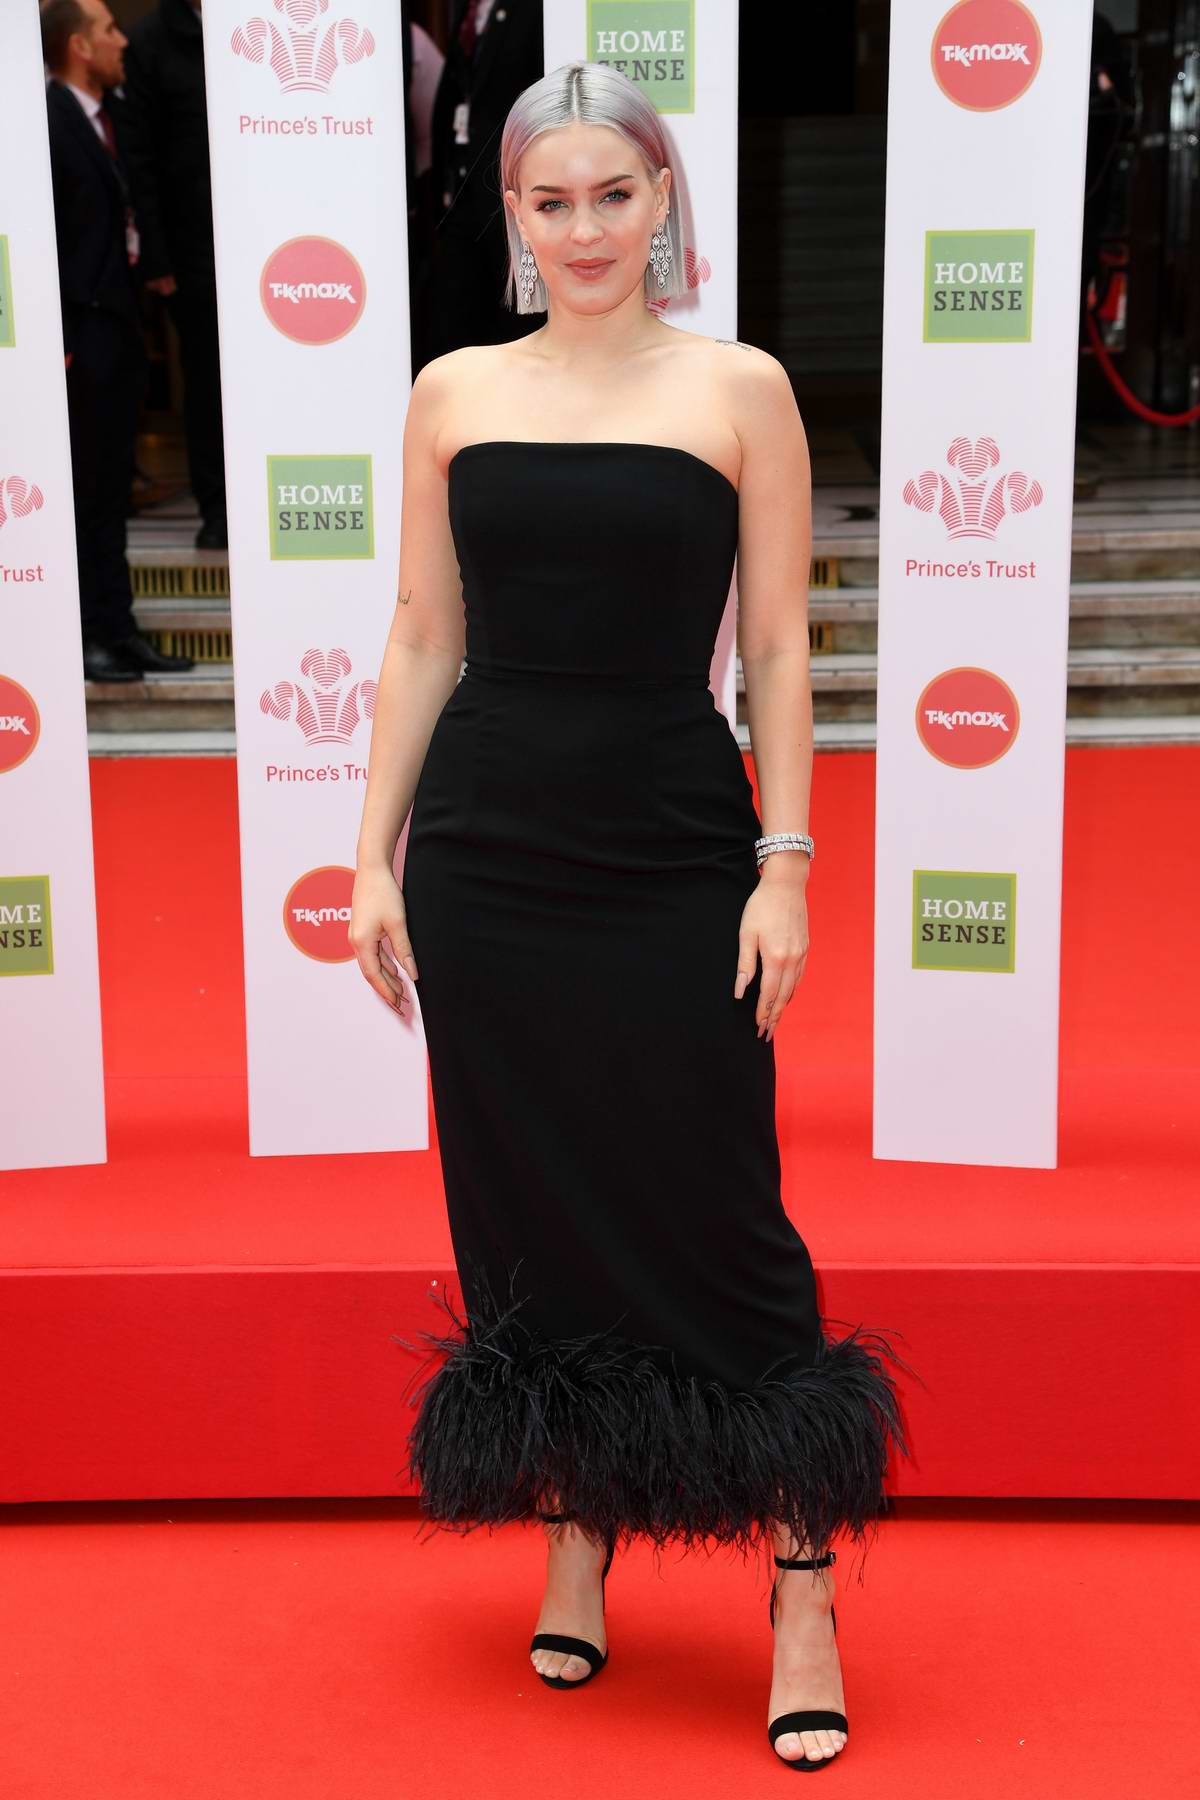 Anne-Marie attends The Prince's Trust, TKMaxx and Homesense Awards in London, UK